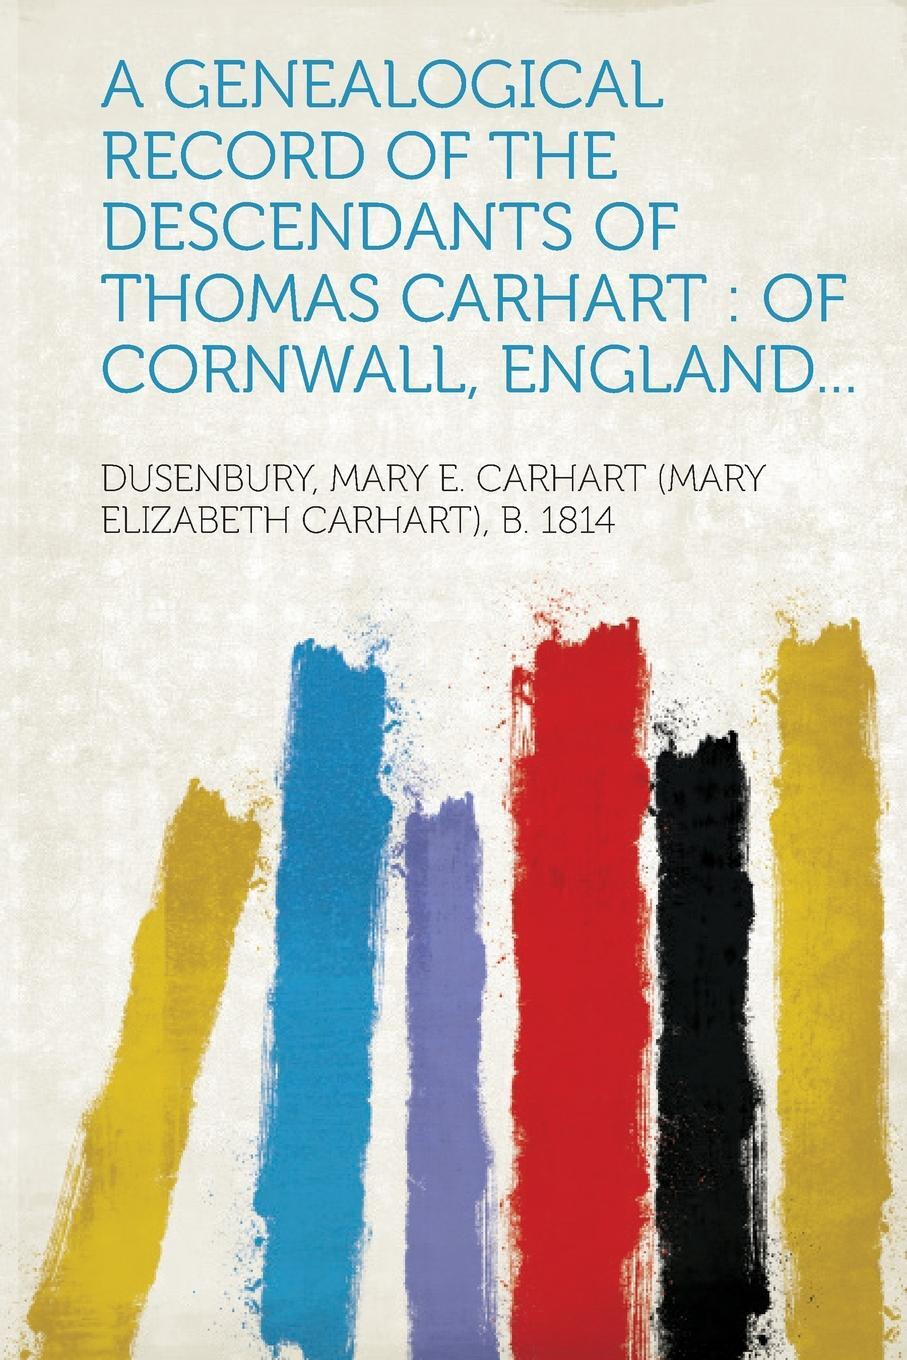 A Genealogical Record of the Descendants of Thomas Carhart. Of Cornwall, England...